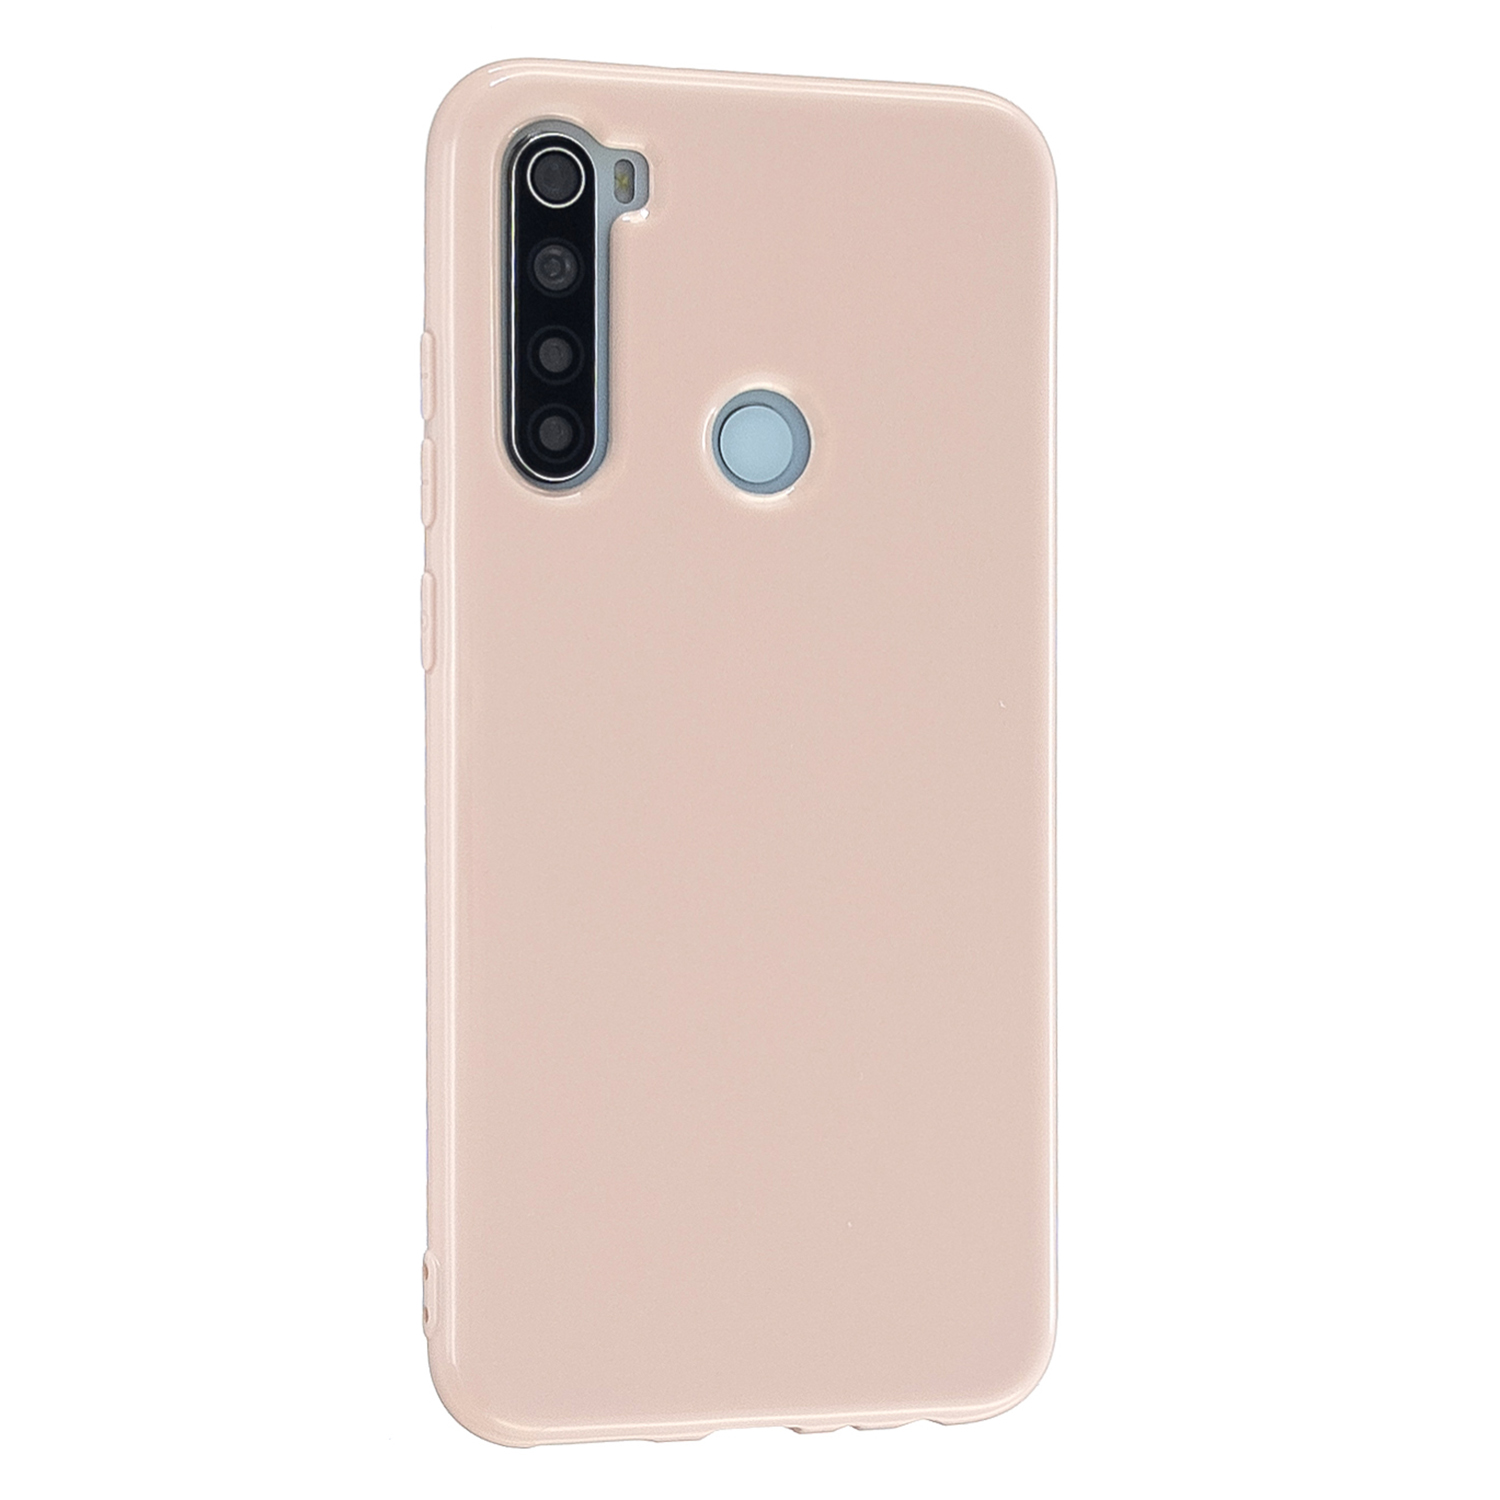 For Redmi Note 8/8 Pro Cellphone Cover 2.0mm Thickened TPU Case Camera Protector Anti-Scratch Soft Phone Shell Pink